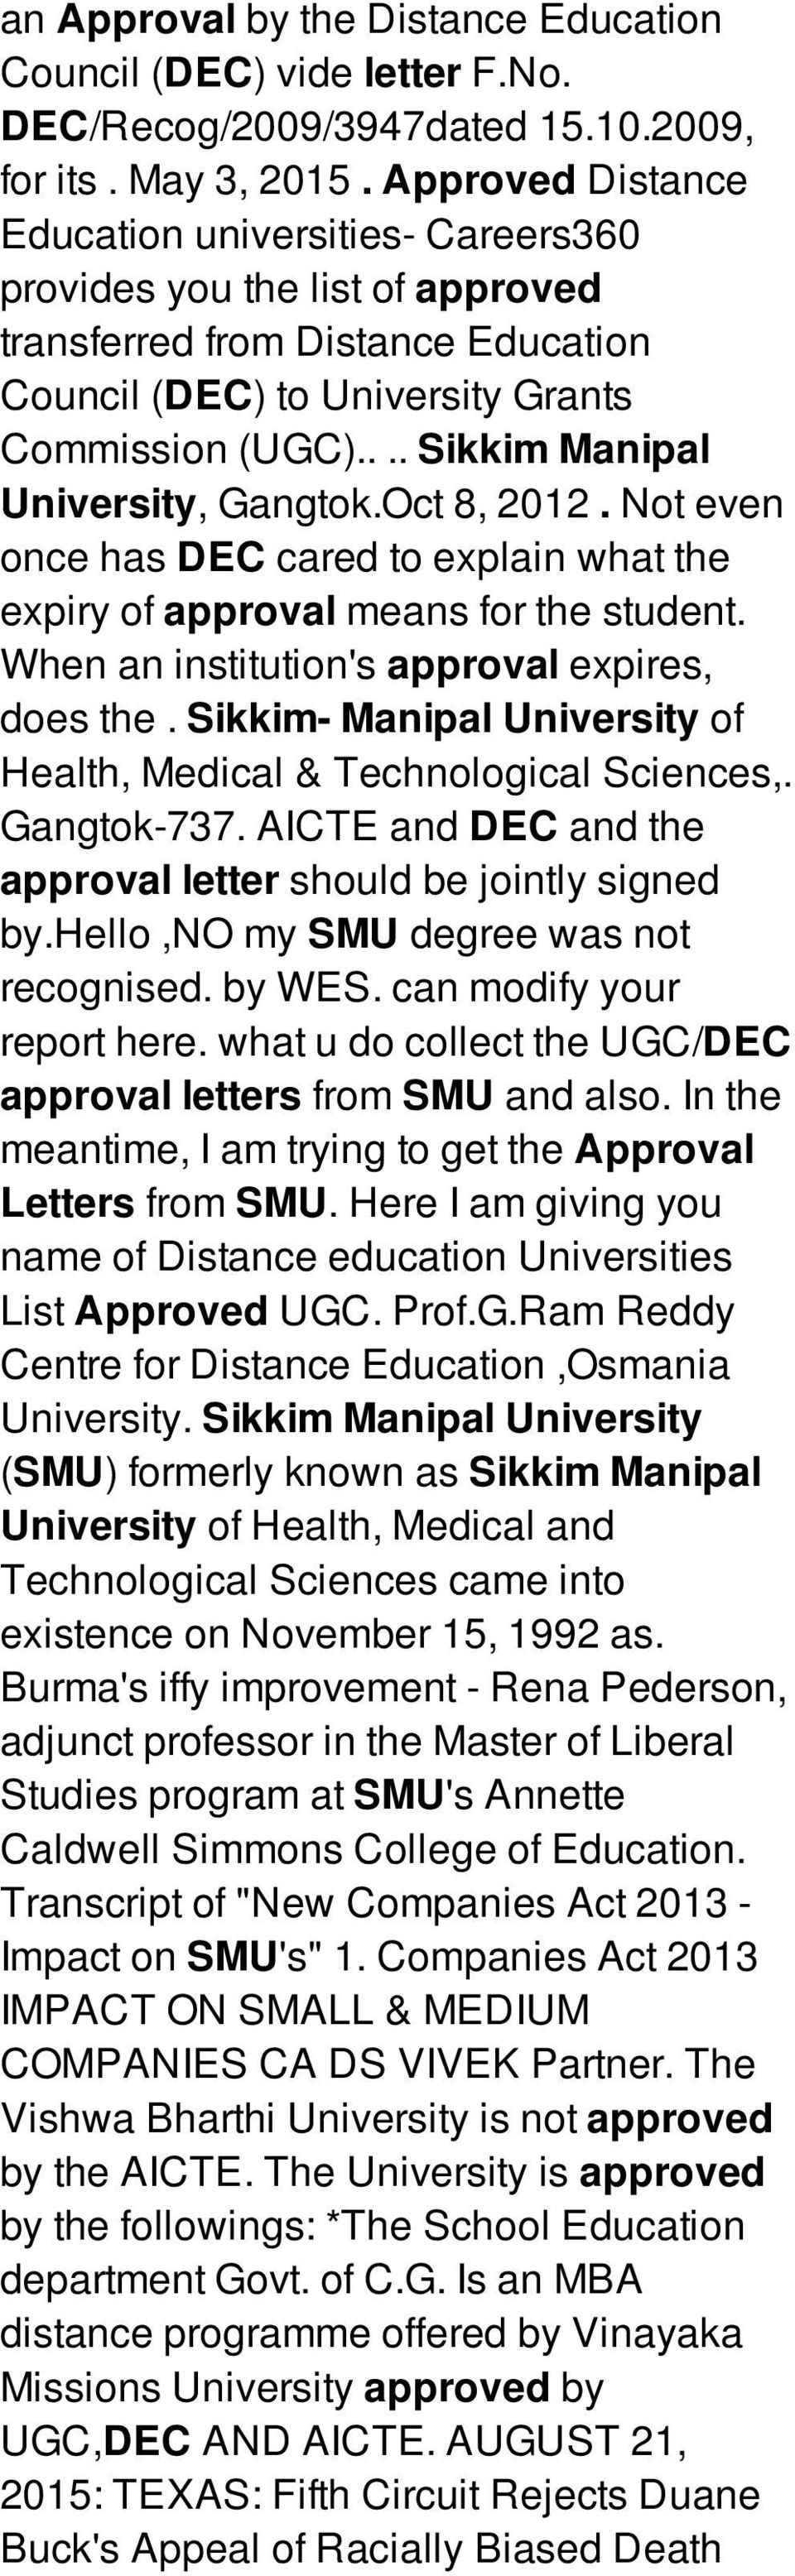 ... Sikkim Manipal University, Gangtok.Oct 8, 2012. Not even once has DEC cared to explain what the expiry of approval means for the student. When an institution's approval expires, does the.